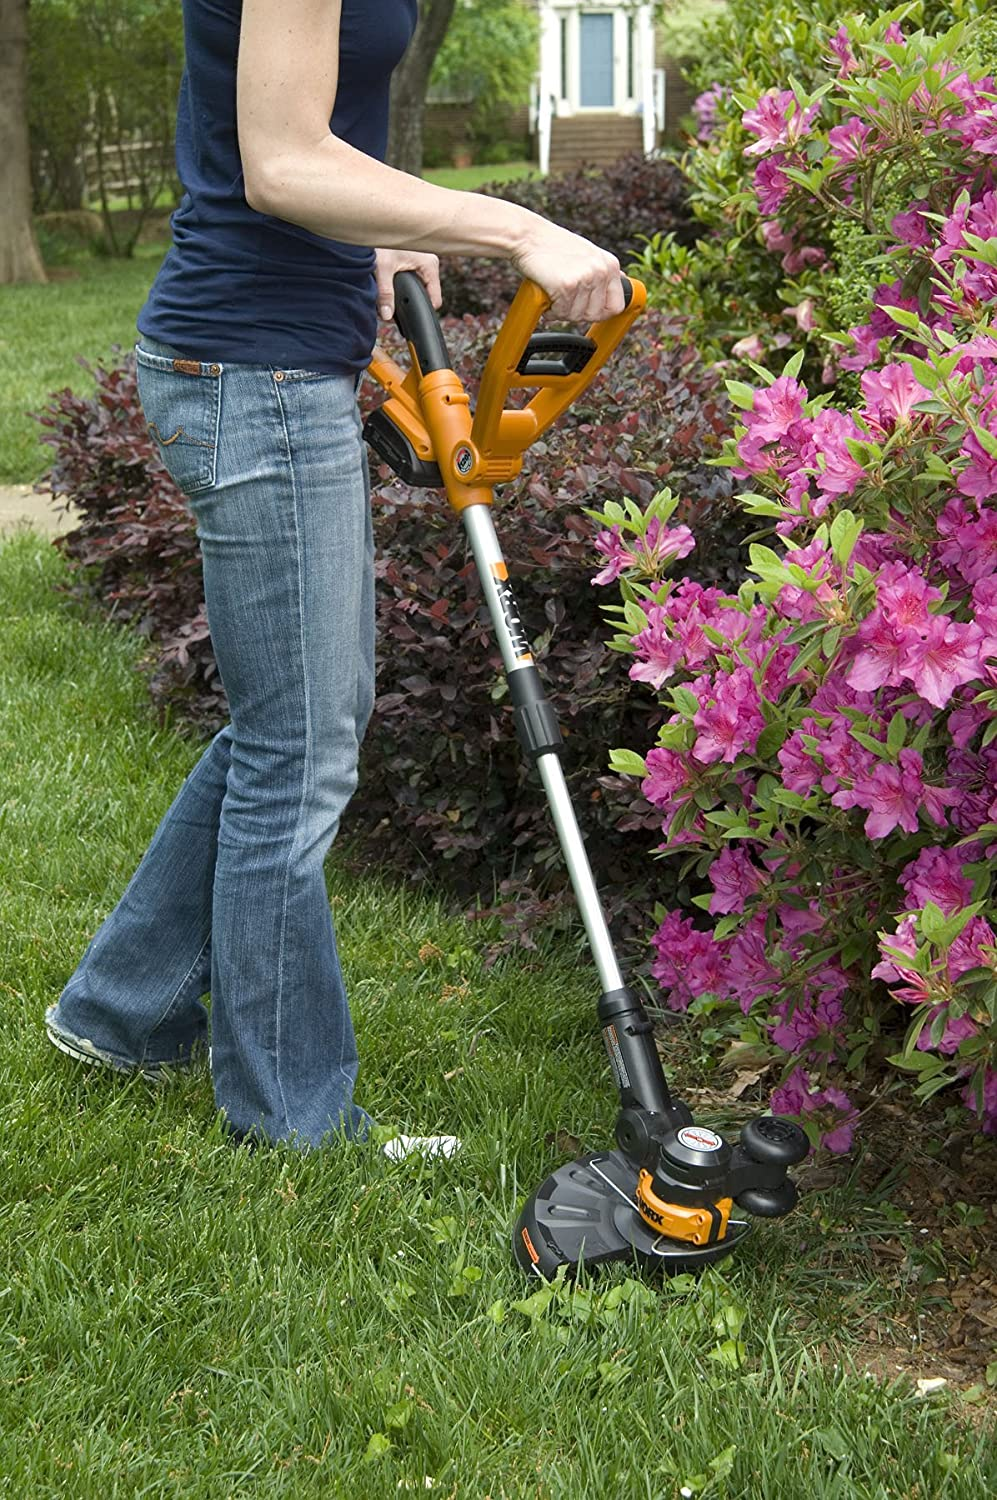 Worx Wg155 20v Max Cordless Lithium 10 Inch String Weed Eater Diagram And Parts List For Weedeater Grasslinetrimmer Trimmer Edger Battery Charger Included Garden Outdoor